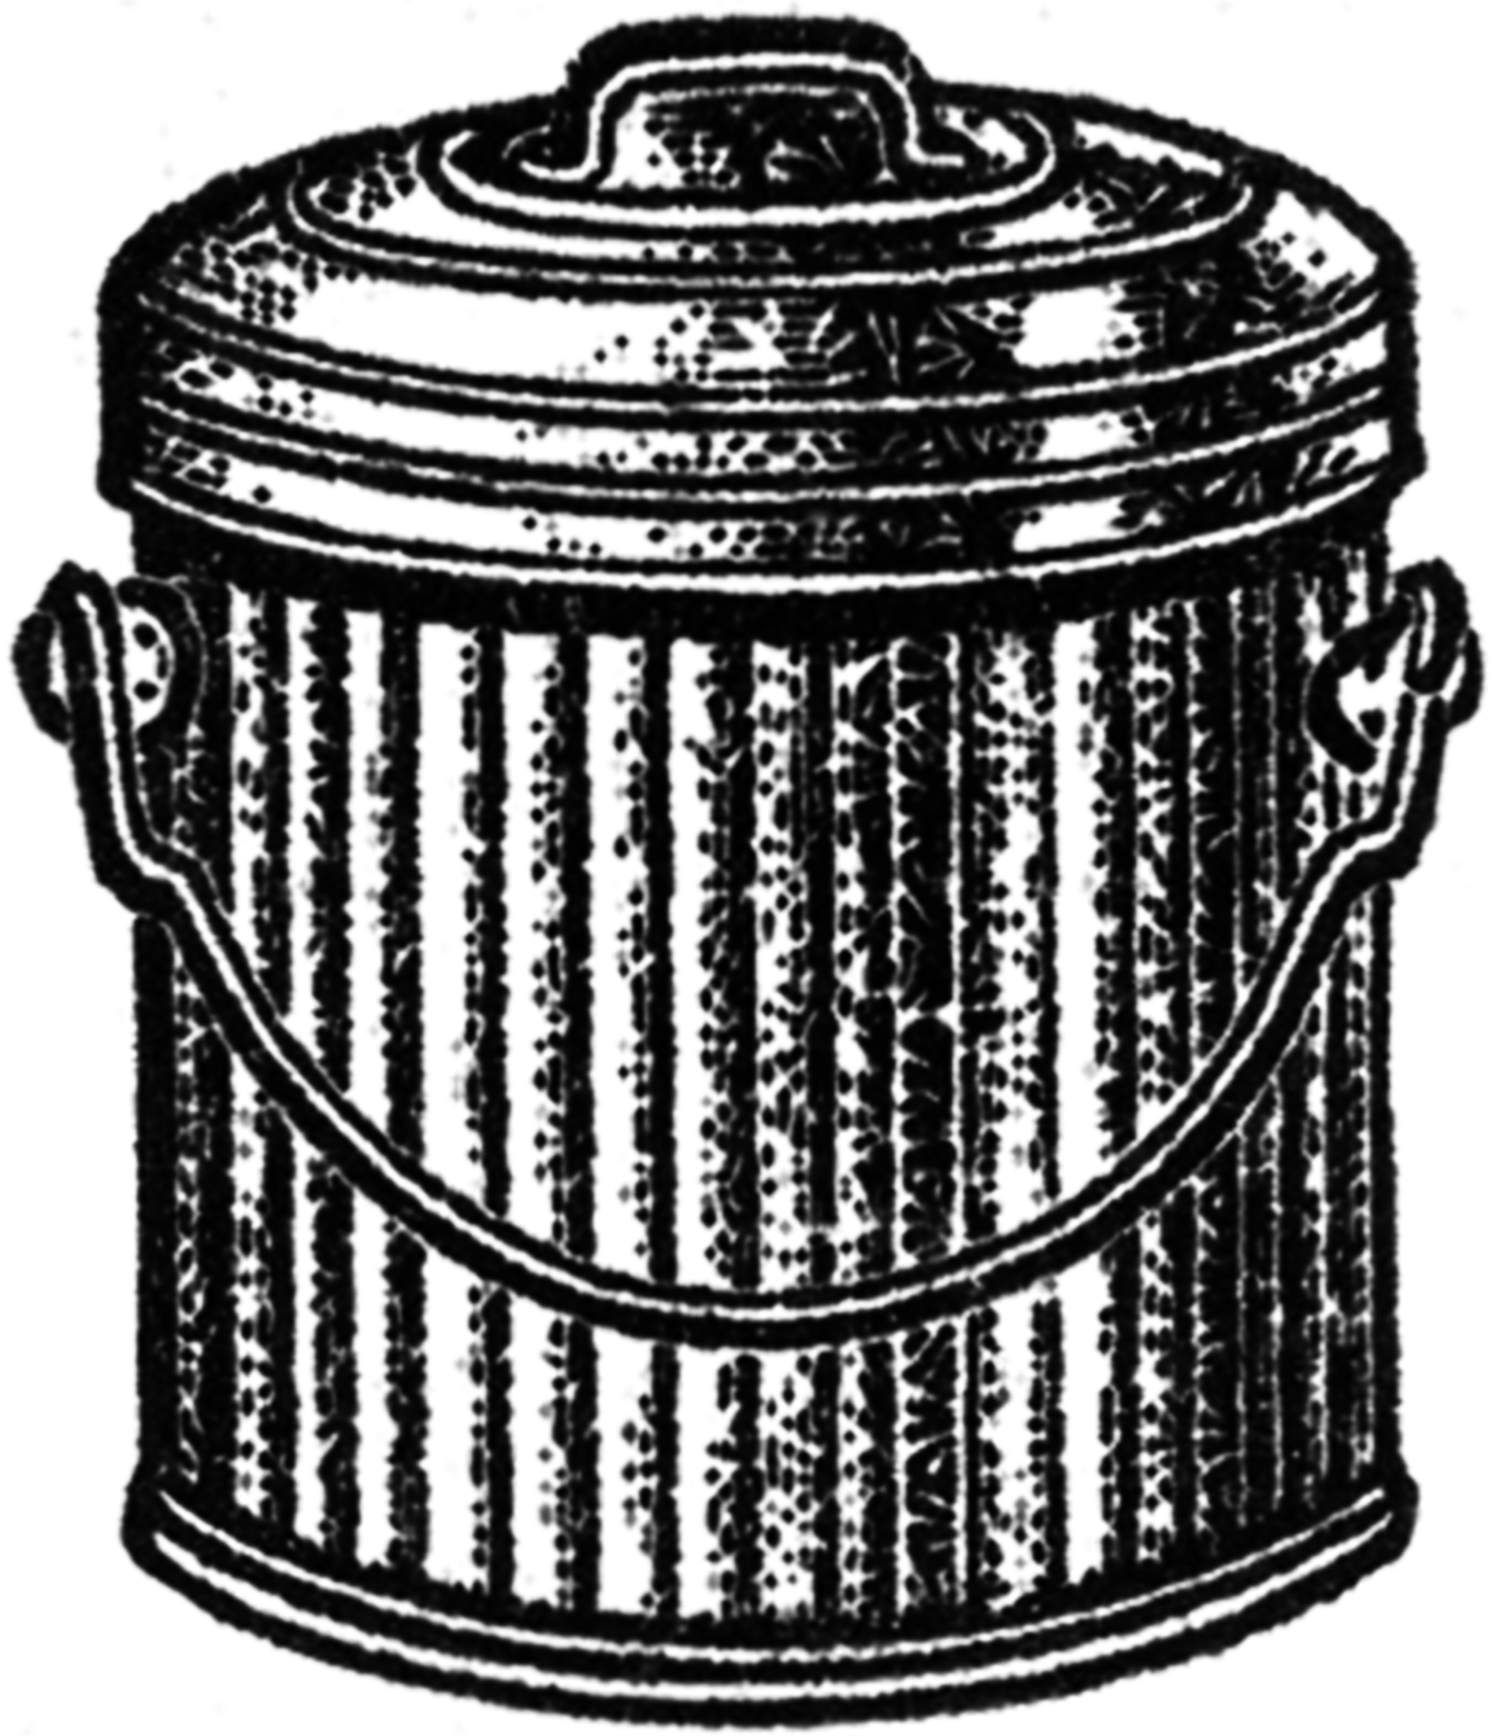 Trash can filled clipart vector black and white Trash can filled clipart - ClipartFest vector black and white